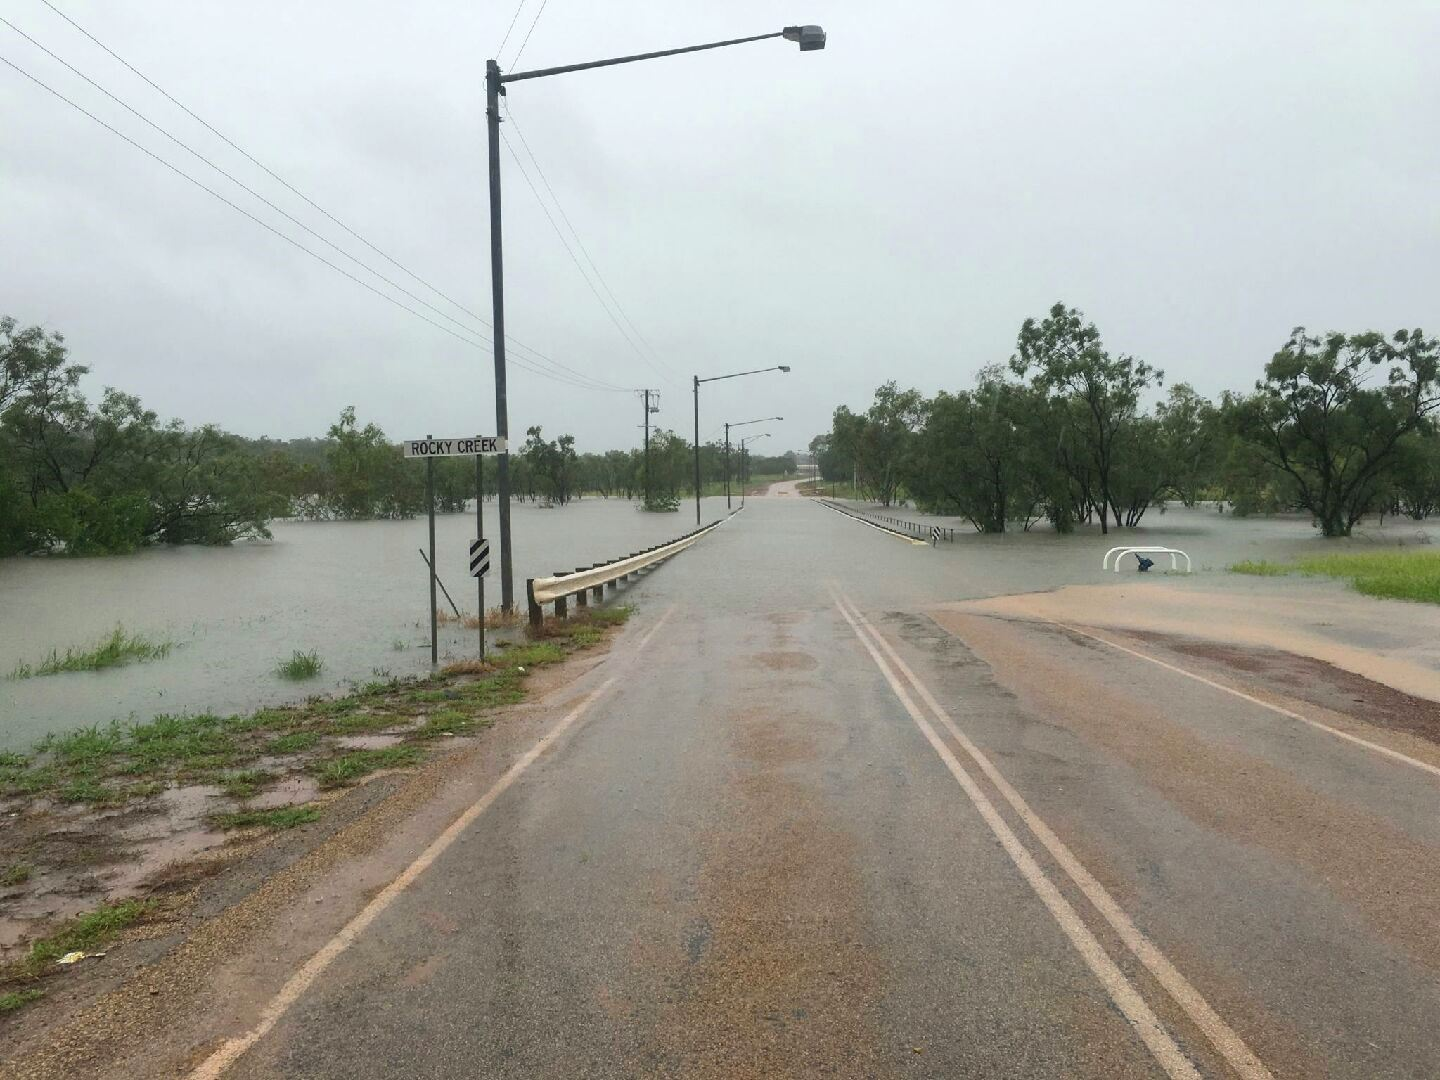 Thumbnail for Ex-Cyclone Alfred brings heavy rain and floods to Gulf of Carpentaria